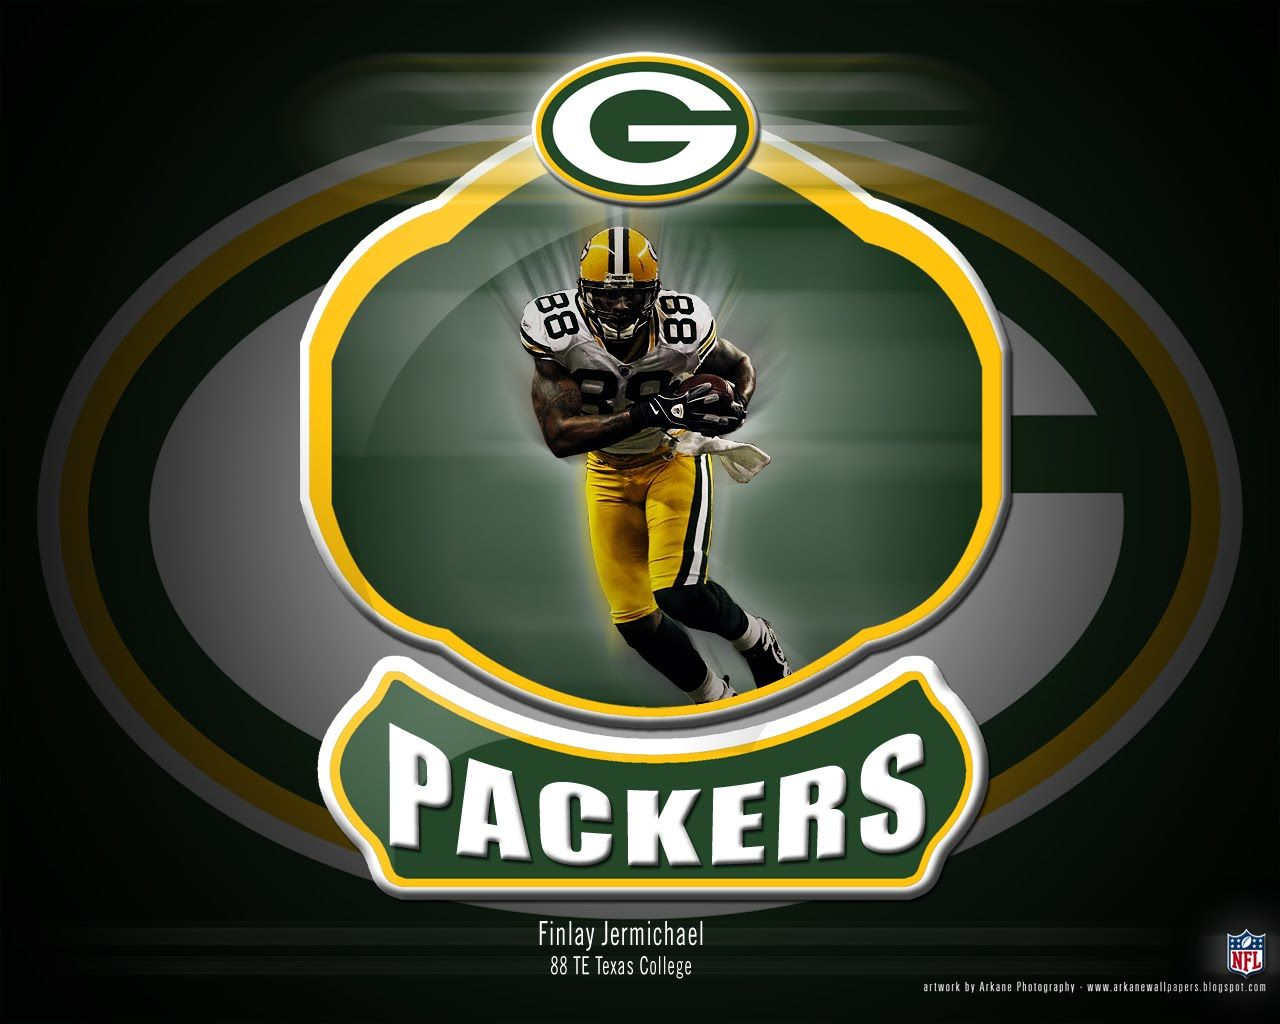 Wallpapers Green Bay Packers Wallpaper 3 Free Computer Wallpapers Green Bay Packers Wallpaper Green Bay Packers Green Bay